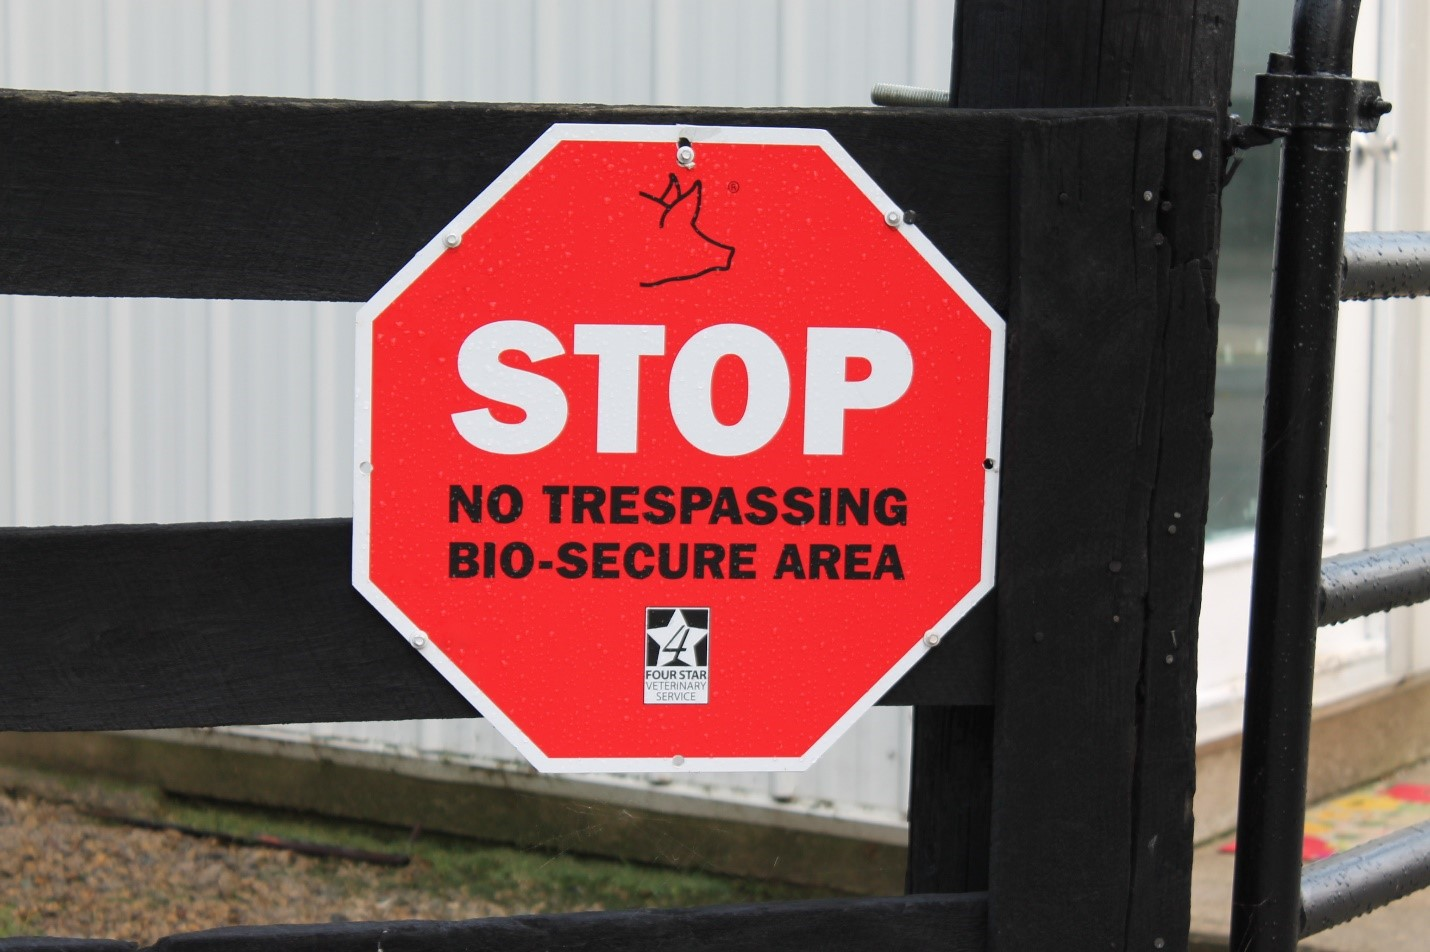 biosecurity sign provided by National Pork Board